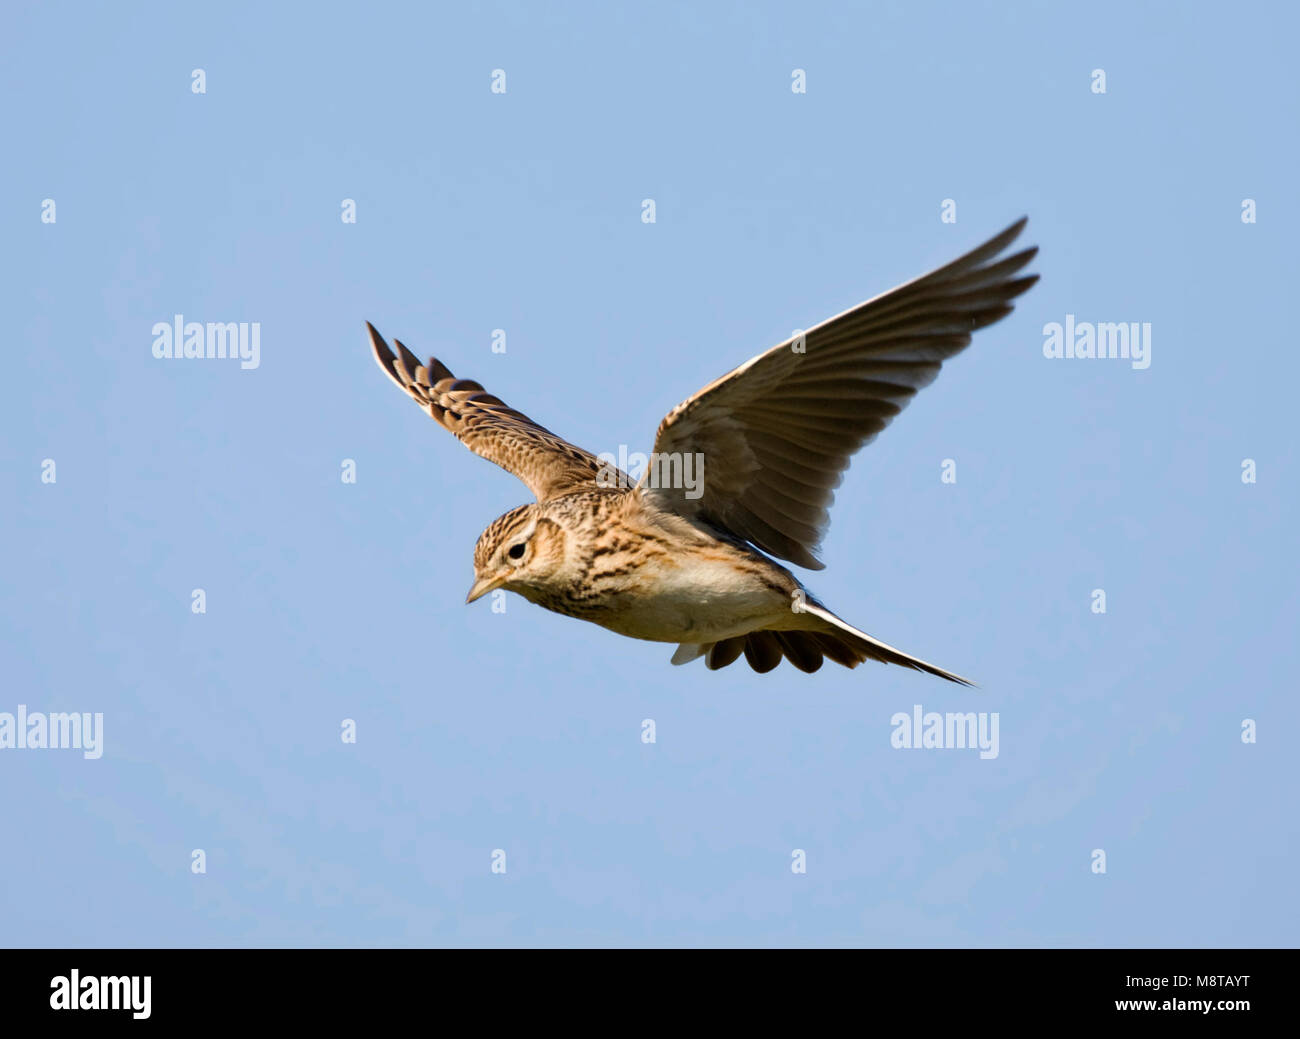 Veldleeuwerik vliegend tijdens baltsvlucht; Skylark flying during display flight - Stock Image